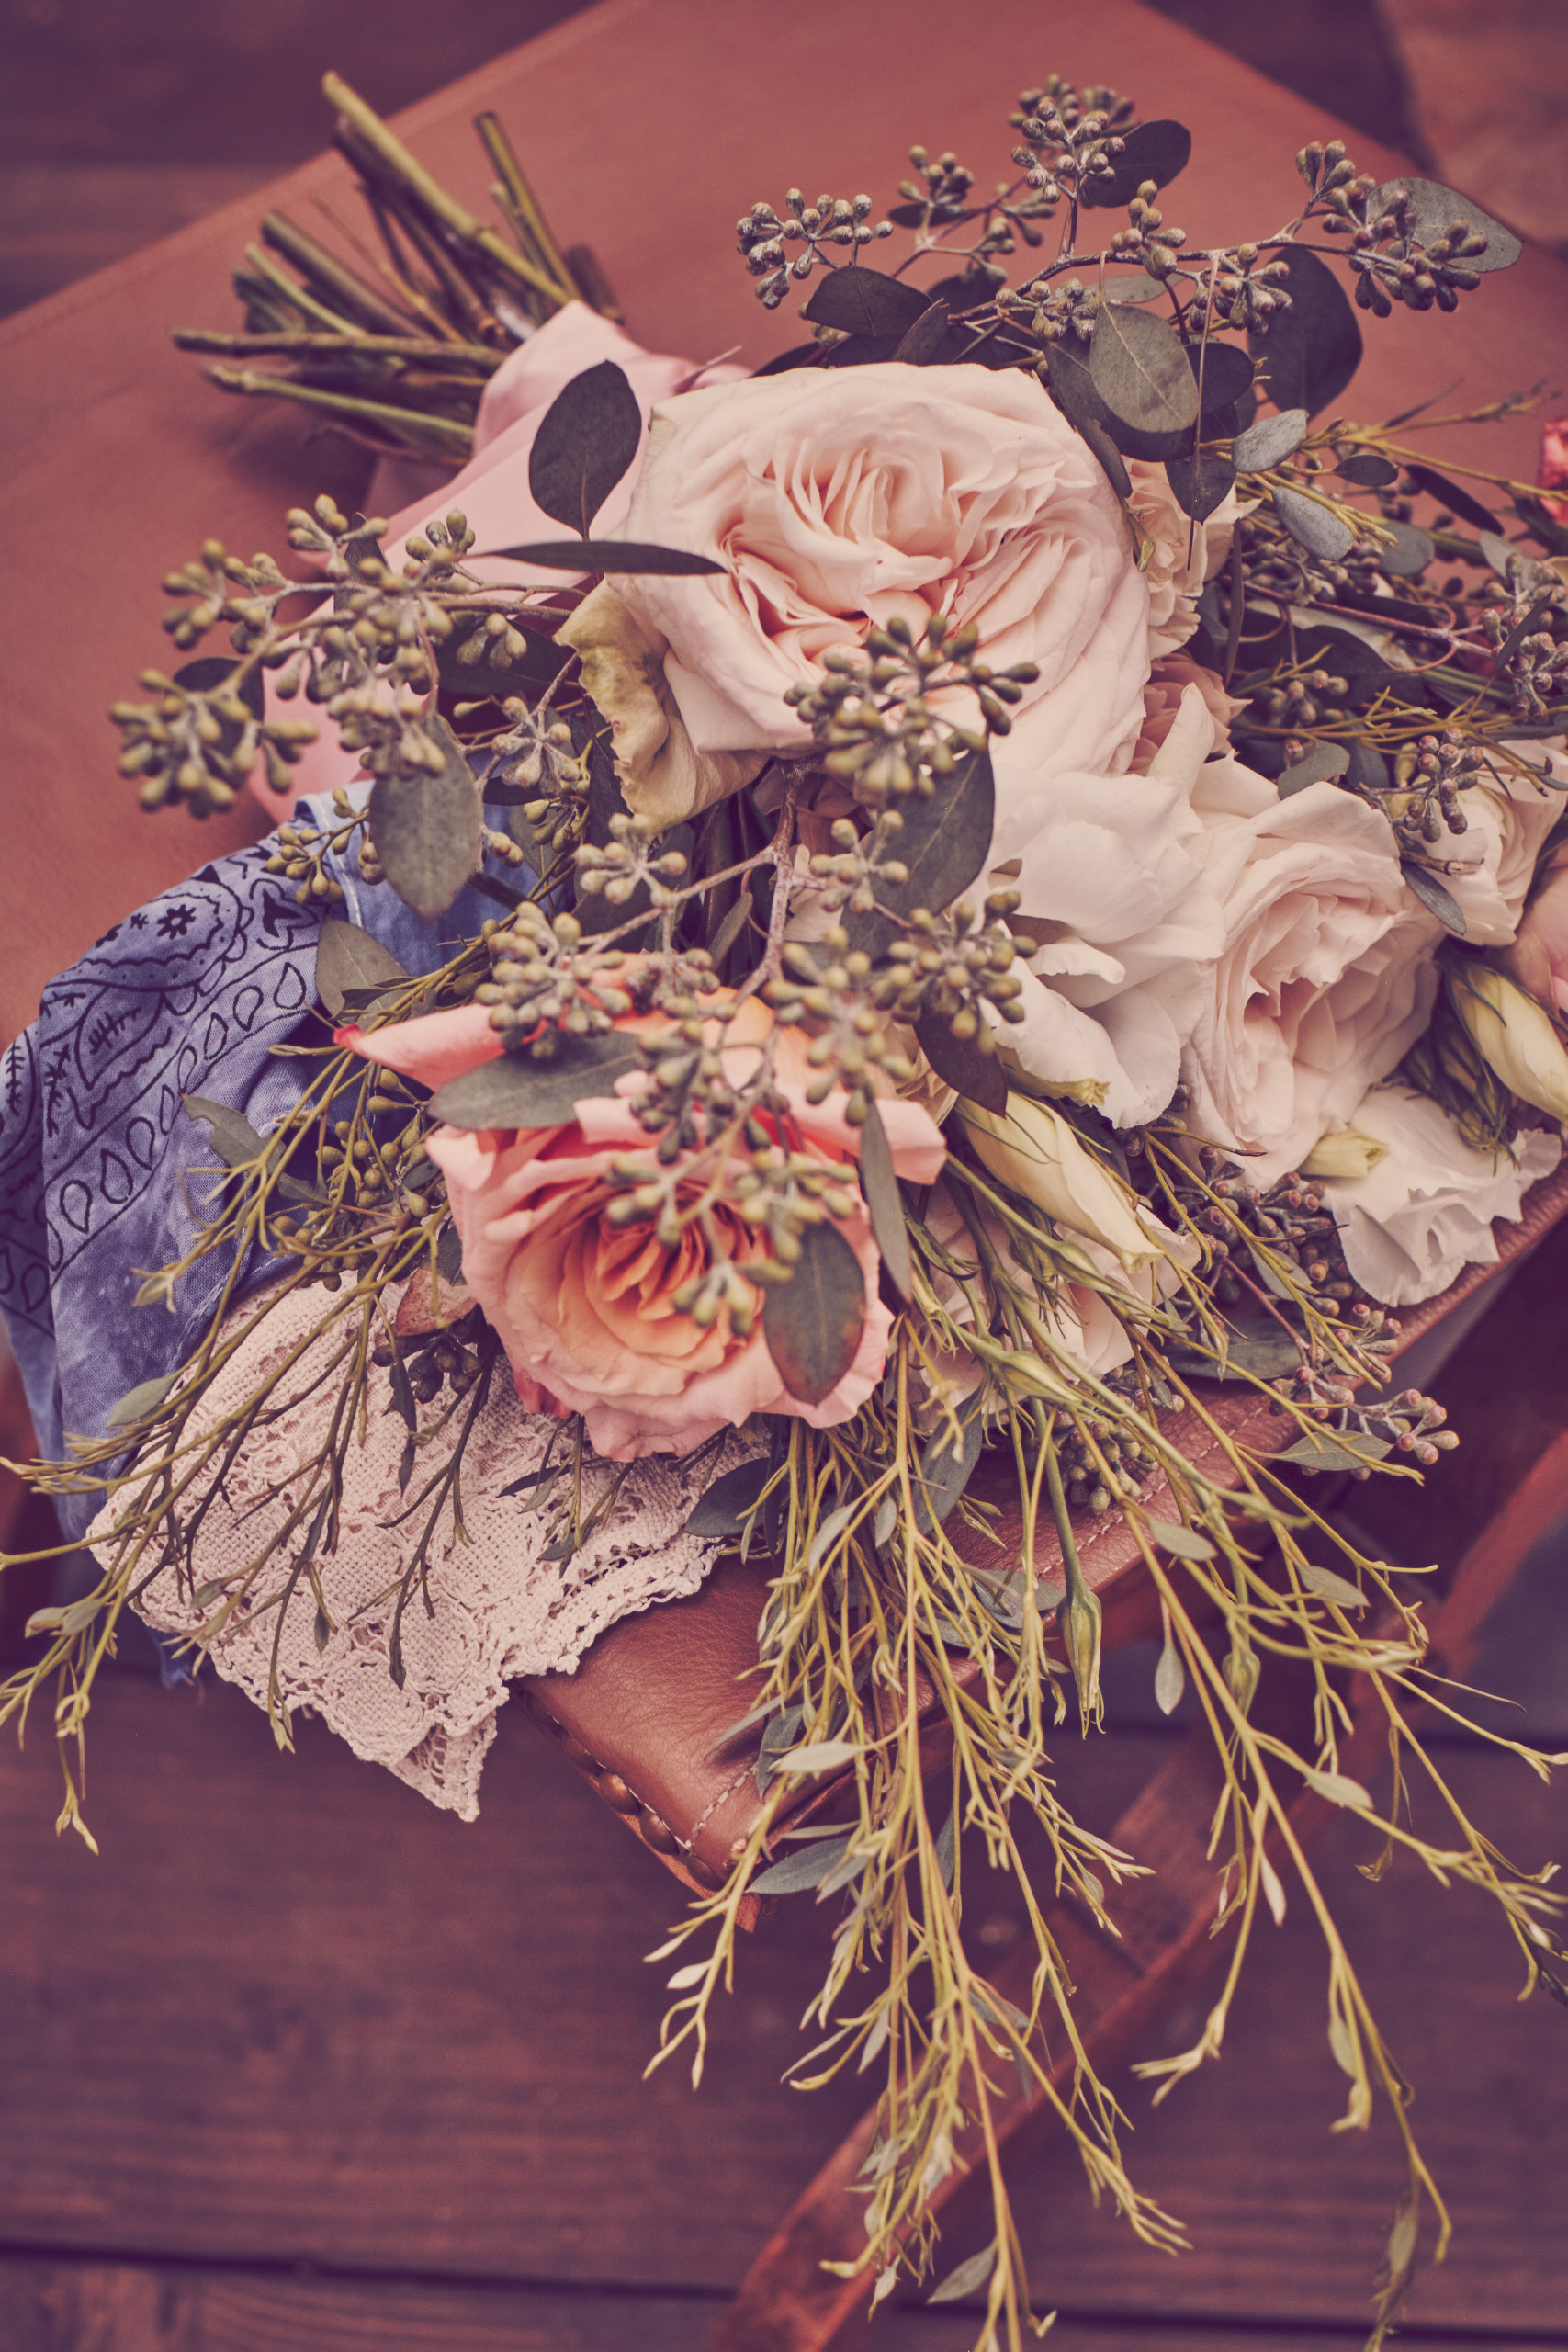 Rustic wedding flower bouquet laying on leather seat